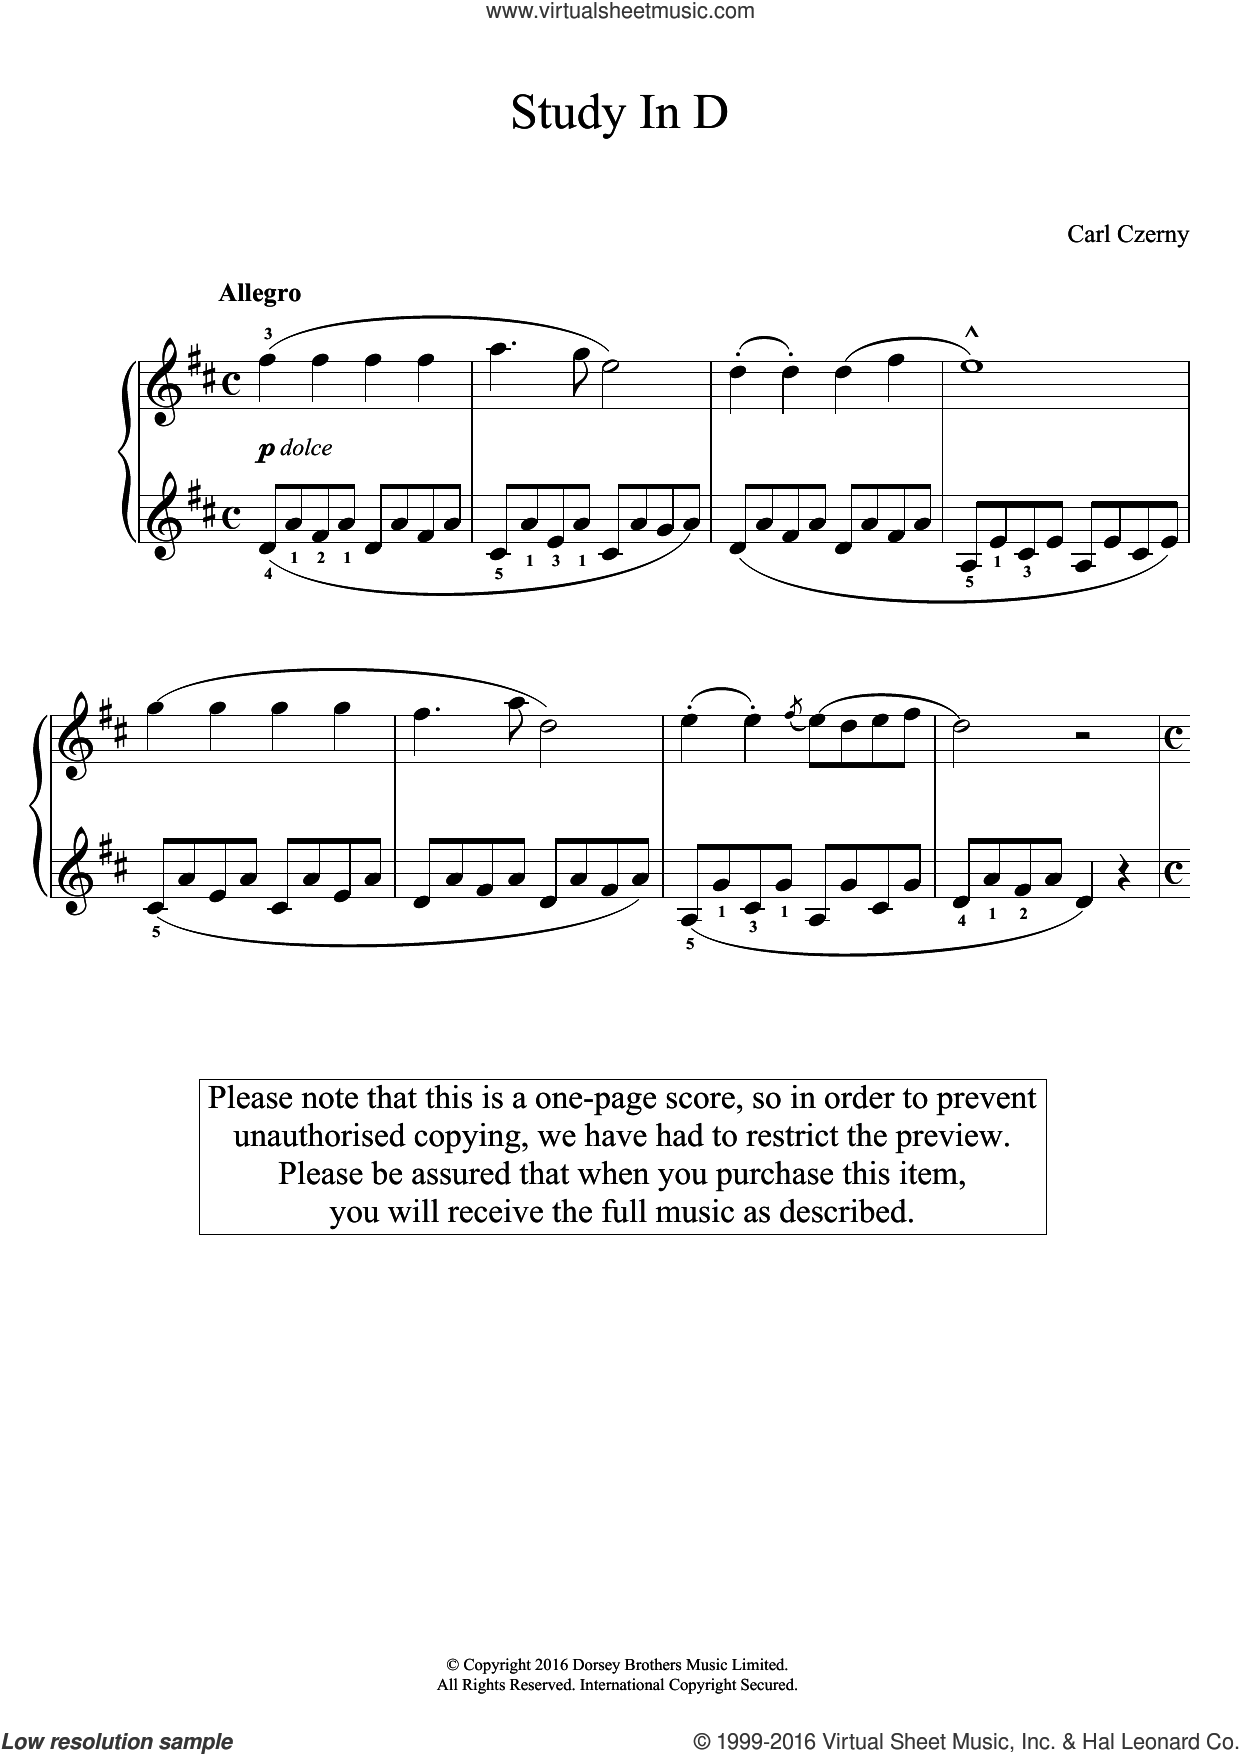 Study In D sheet music for piano solo by Carl Czerny, classical score, easy skill level